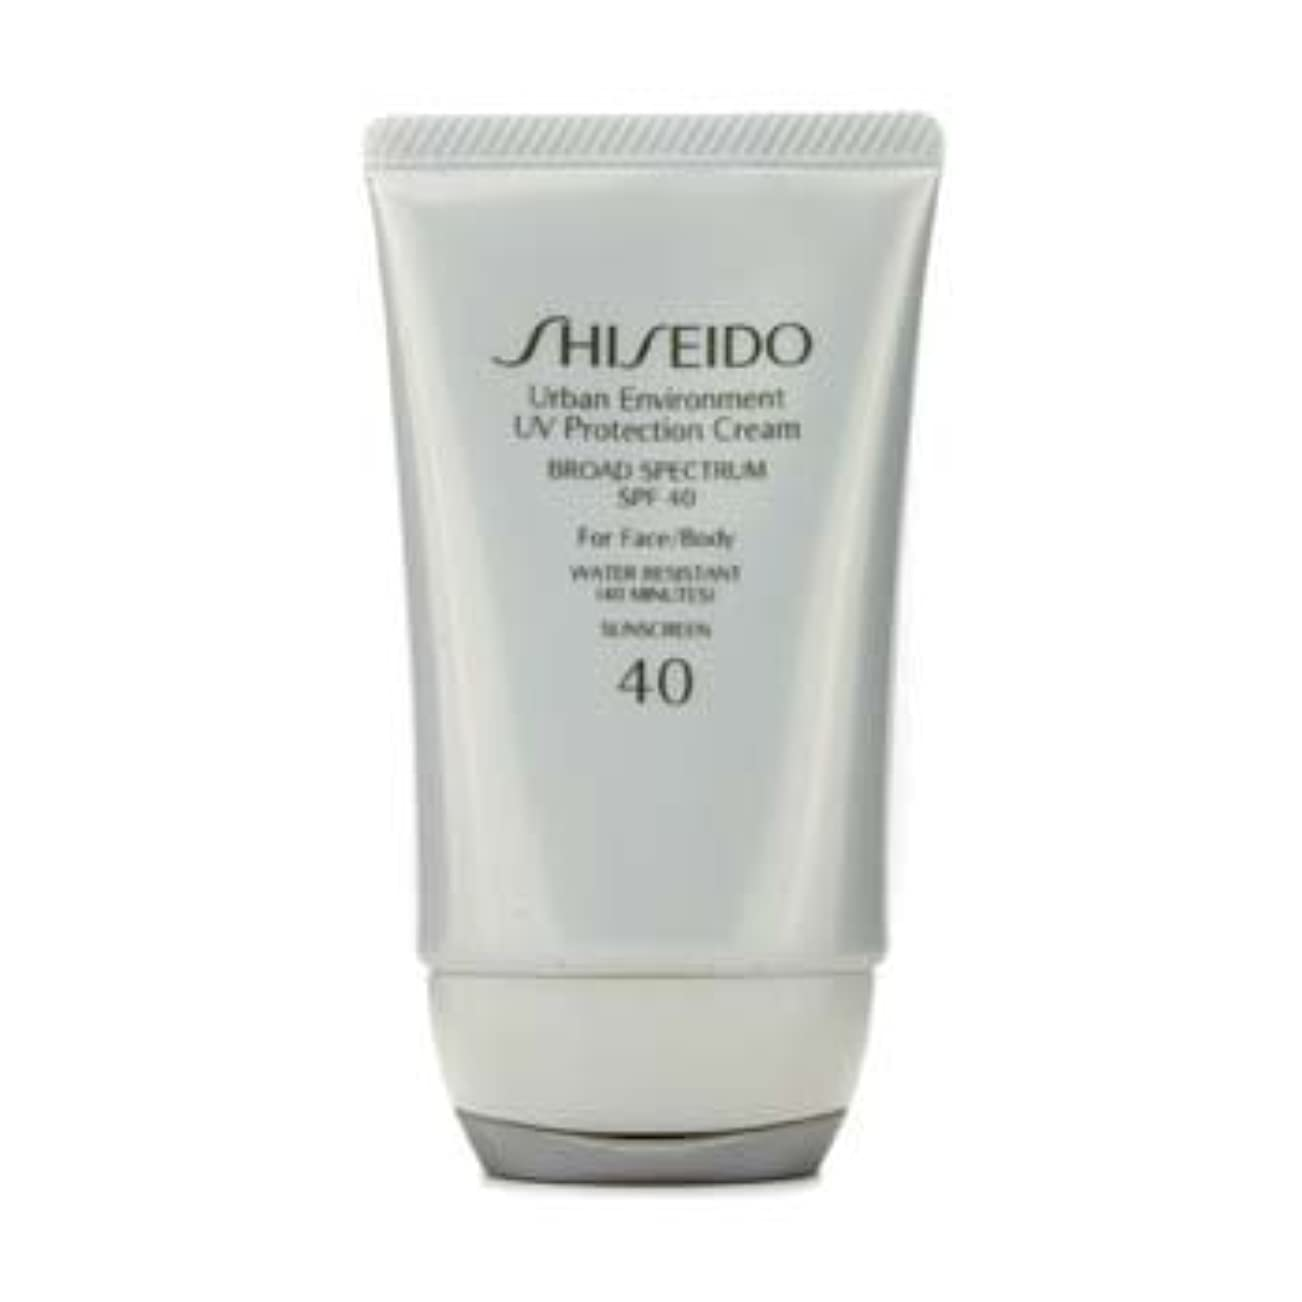 影のある拍車シンボルShiseido Urban Environment UV Protection Cream SPF 40 (For Face & Body) - 50ml/1.9oz by Shiseido [並行輸入品]